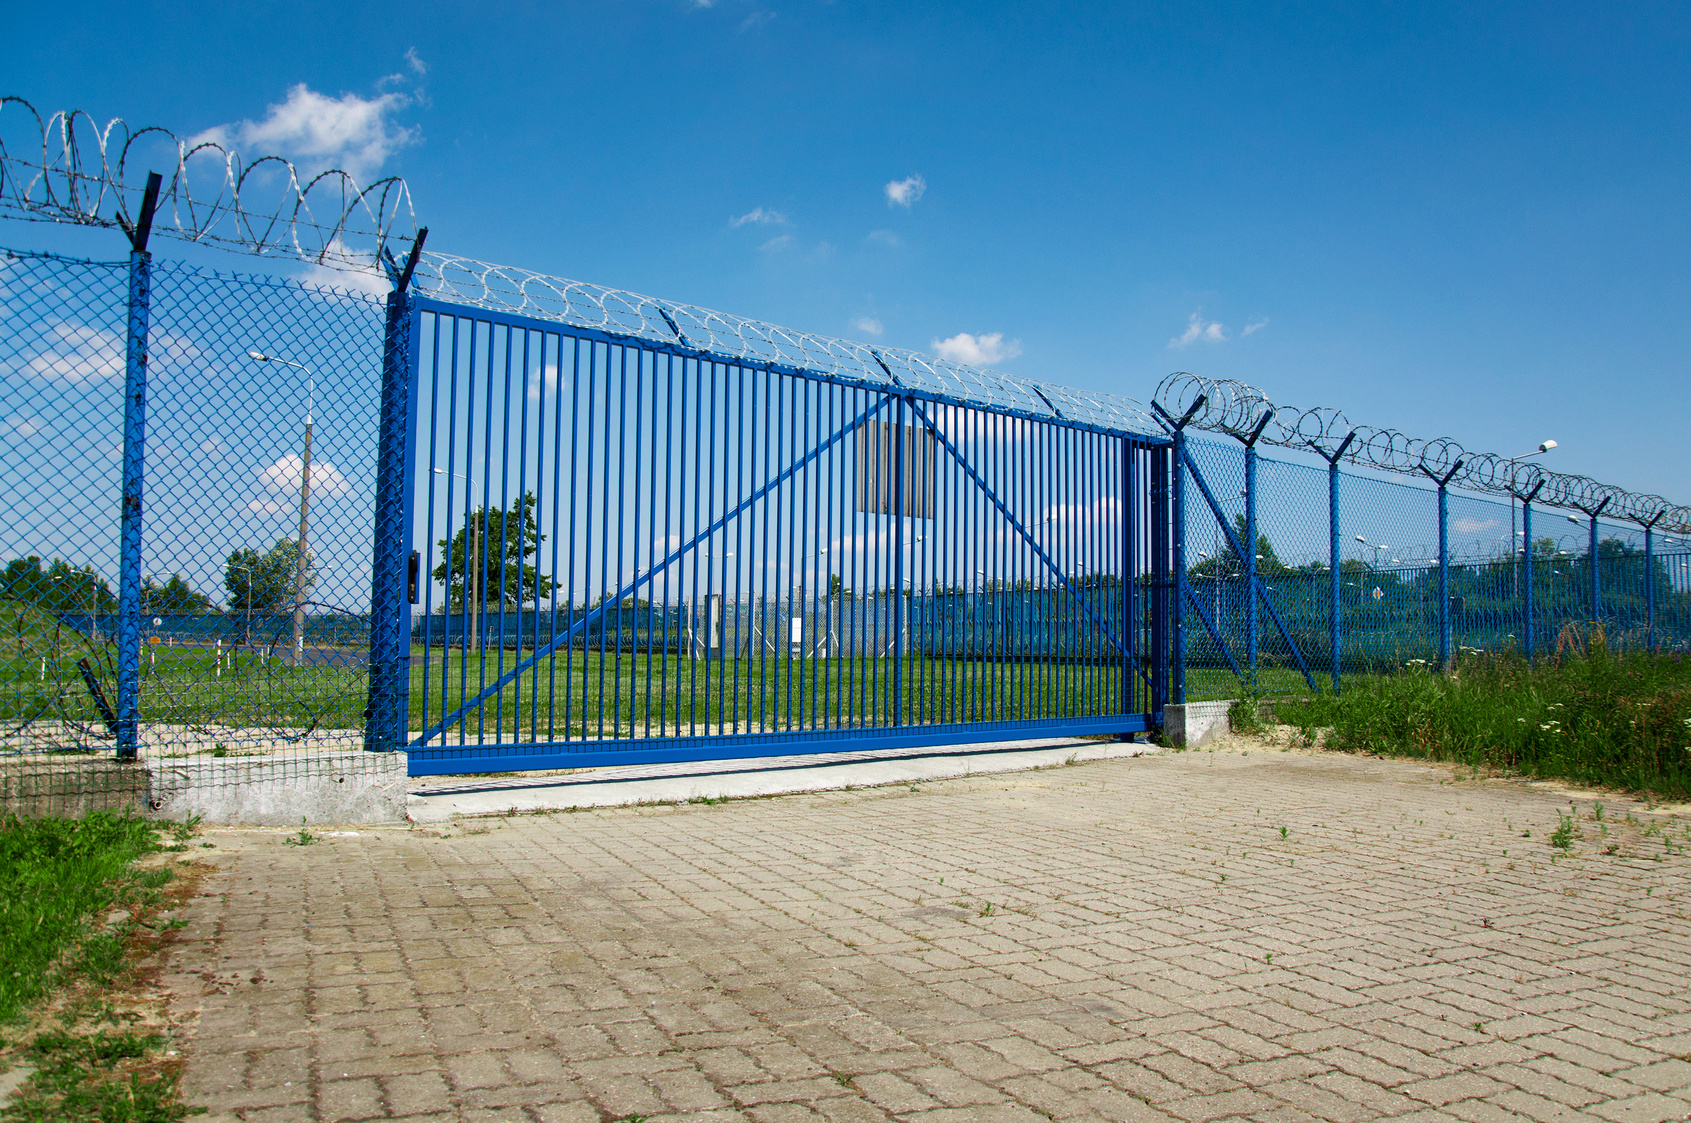 blue fence gate with barbed wire